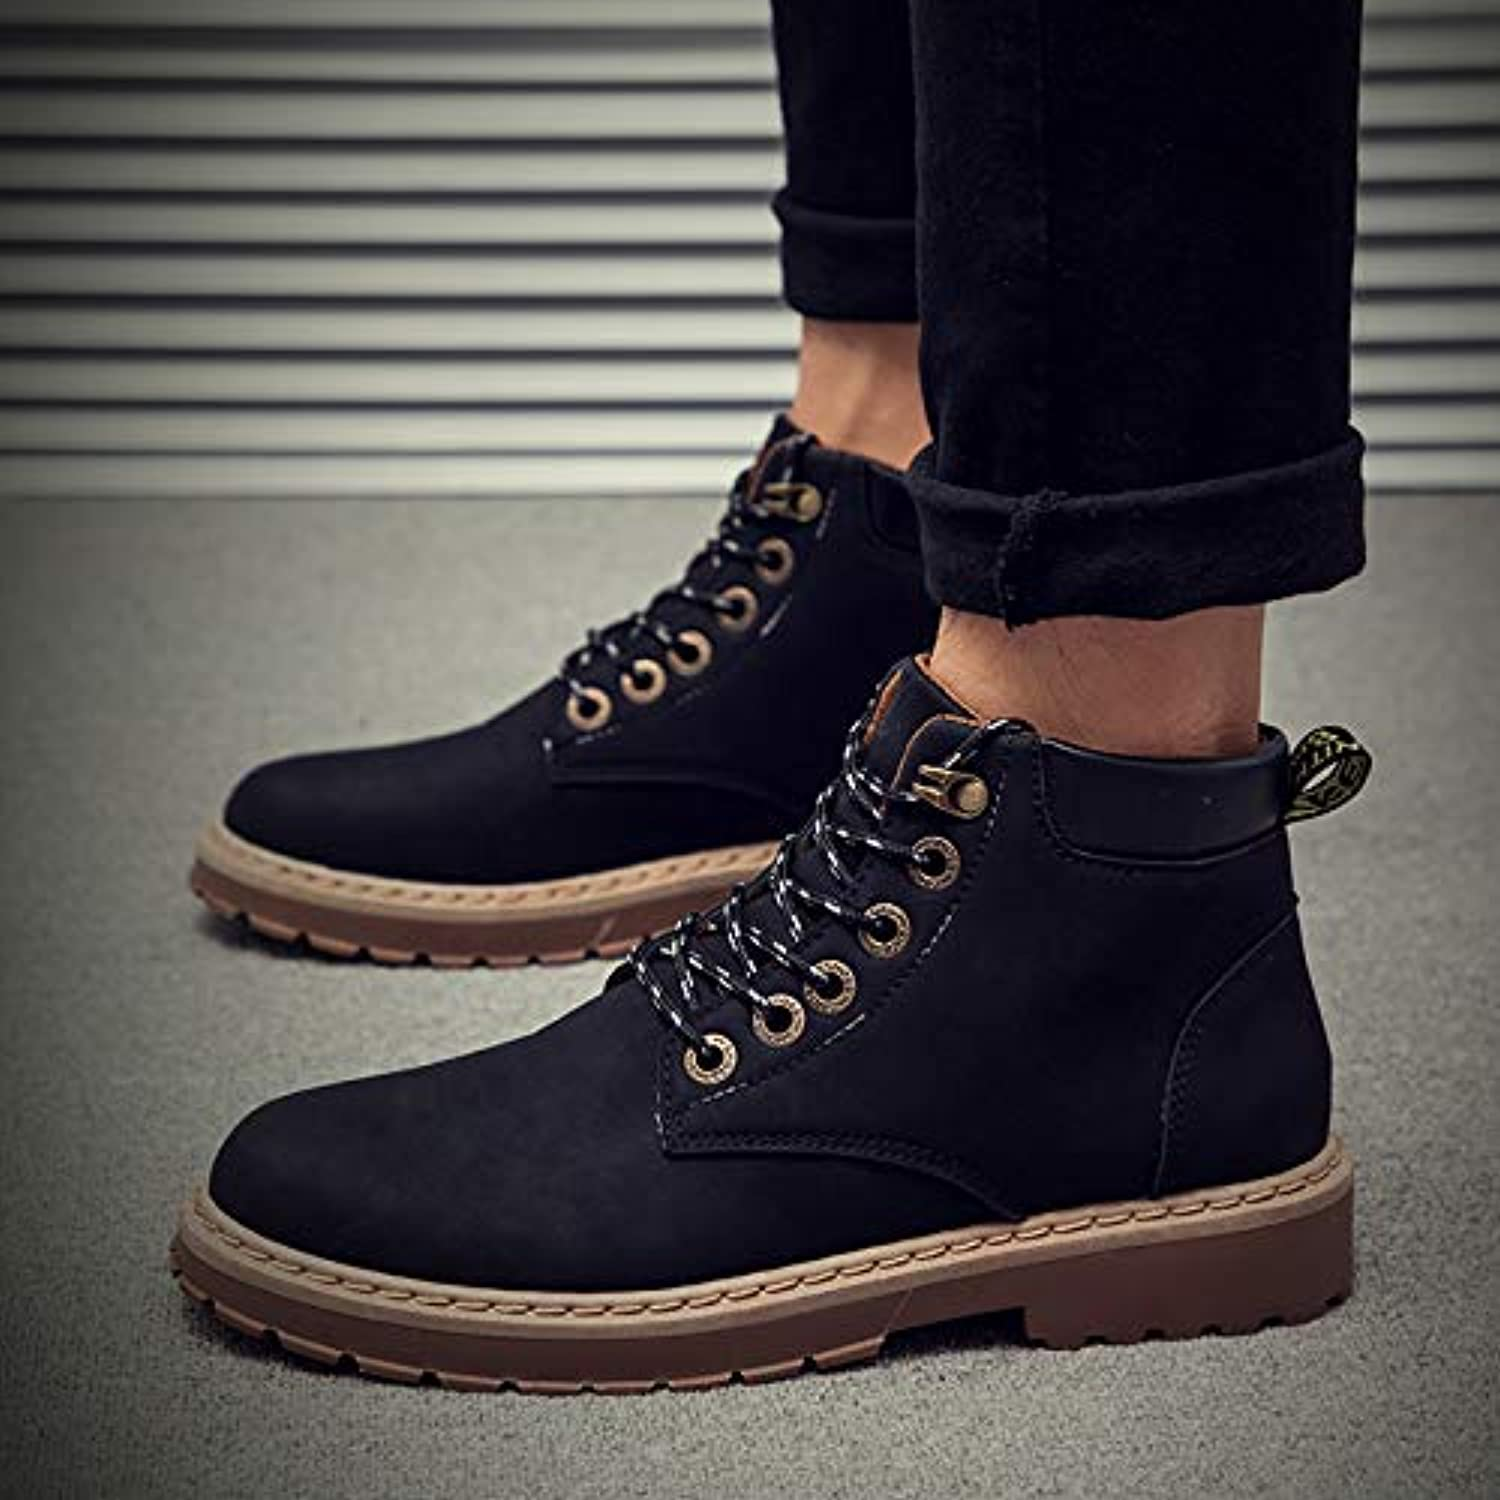 Shukun Men's boots Increased Martin Boots Men'S Casual shoes, Wild High-Top Tooling shoes, Winter shoes